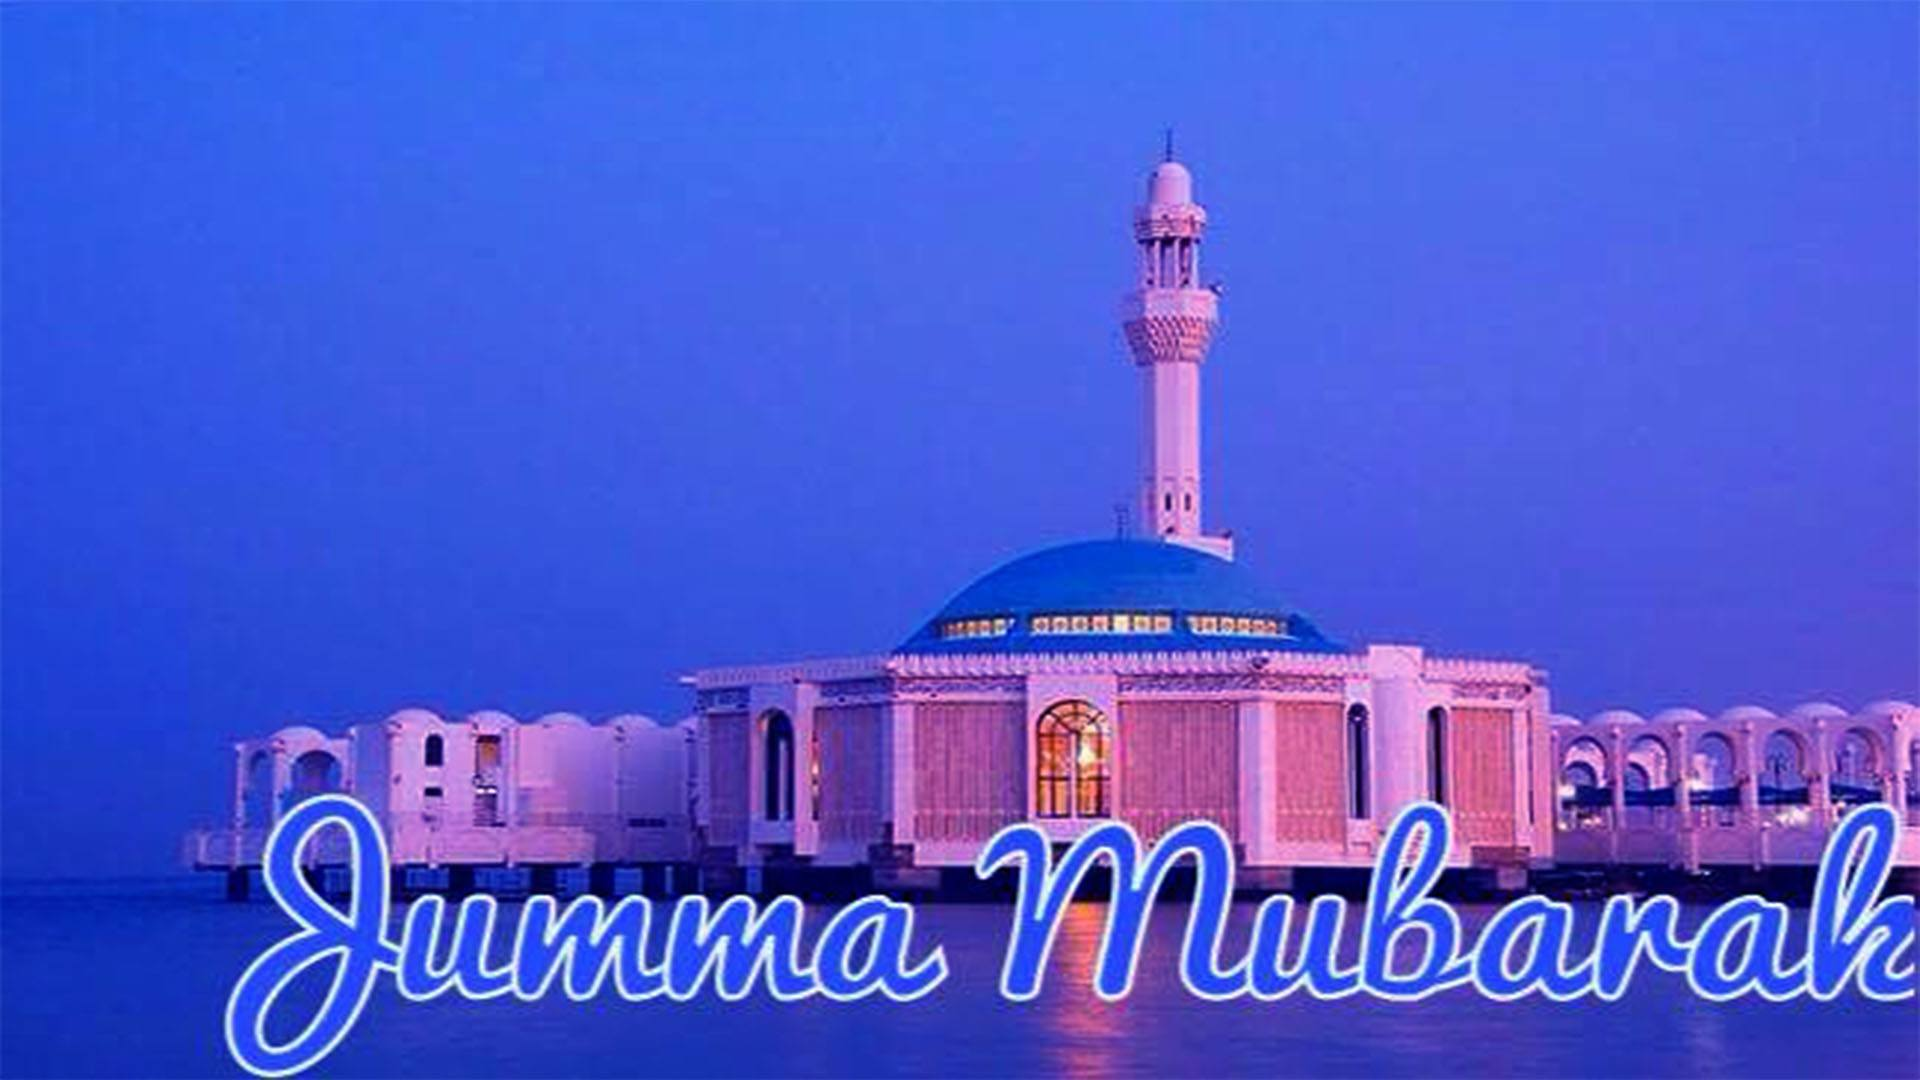 jumma mubarak wallpapers (1)